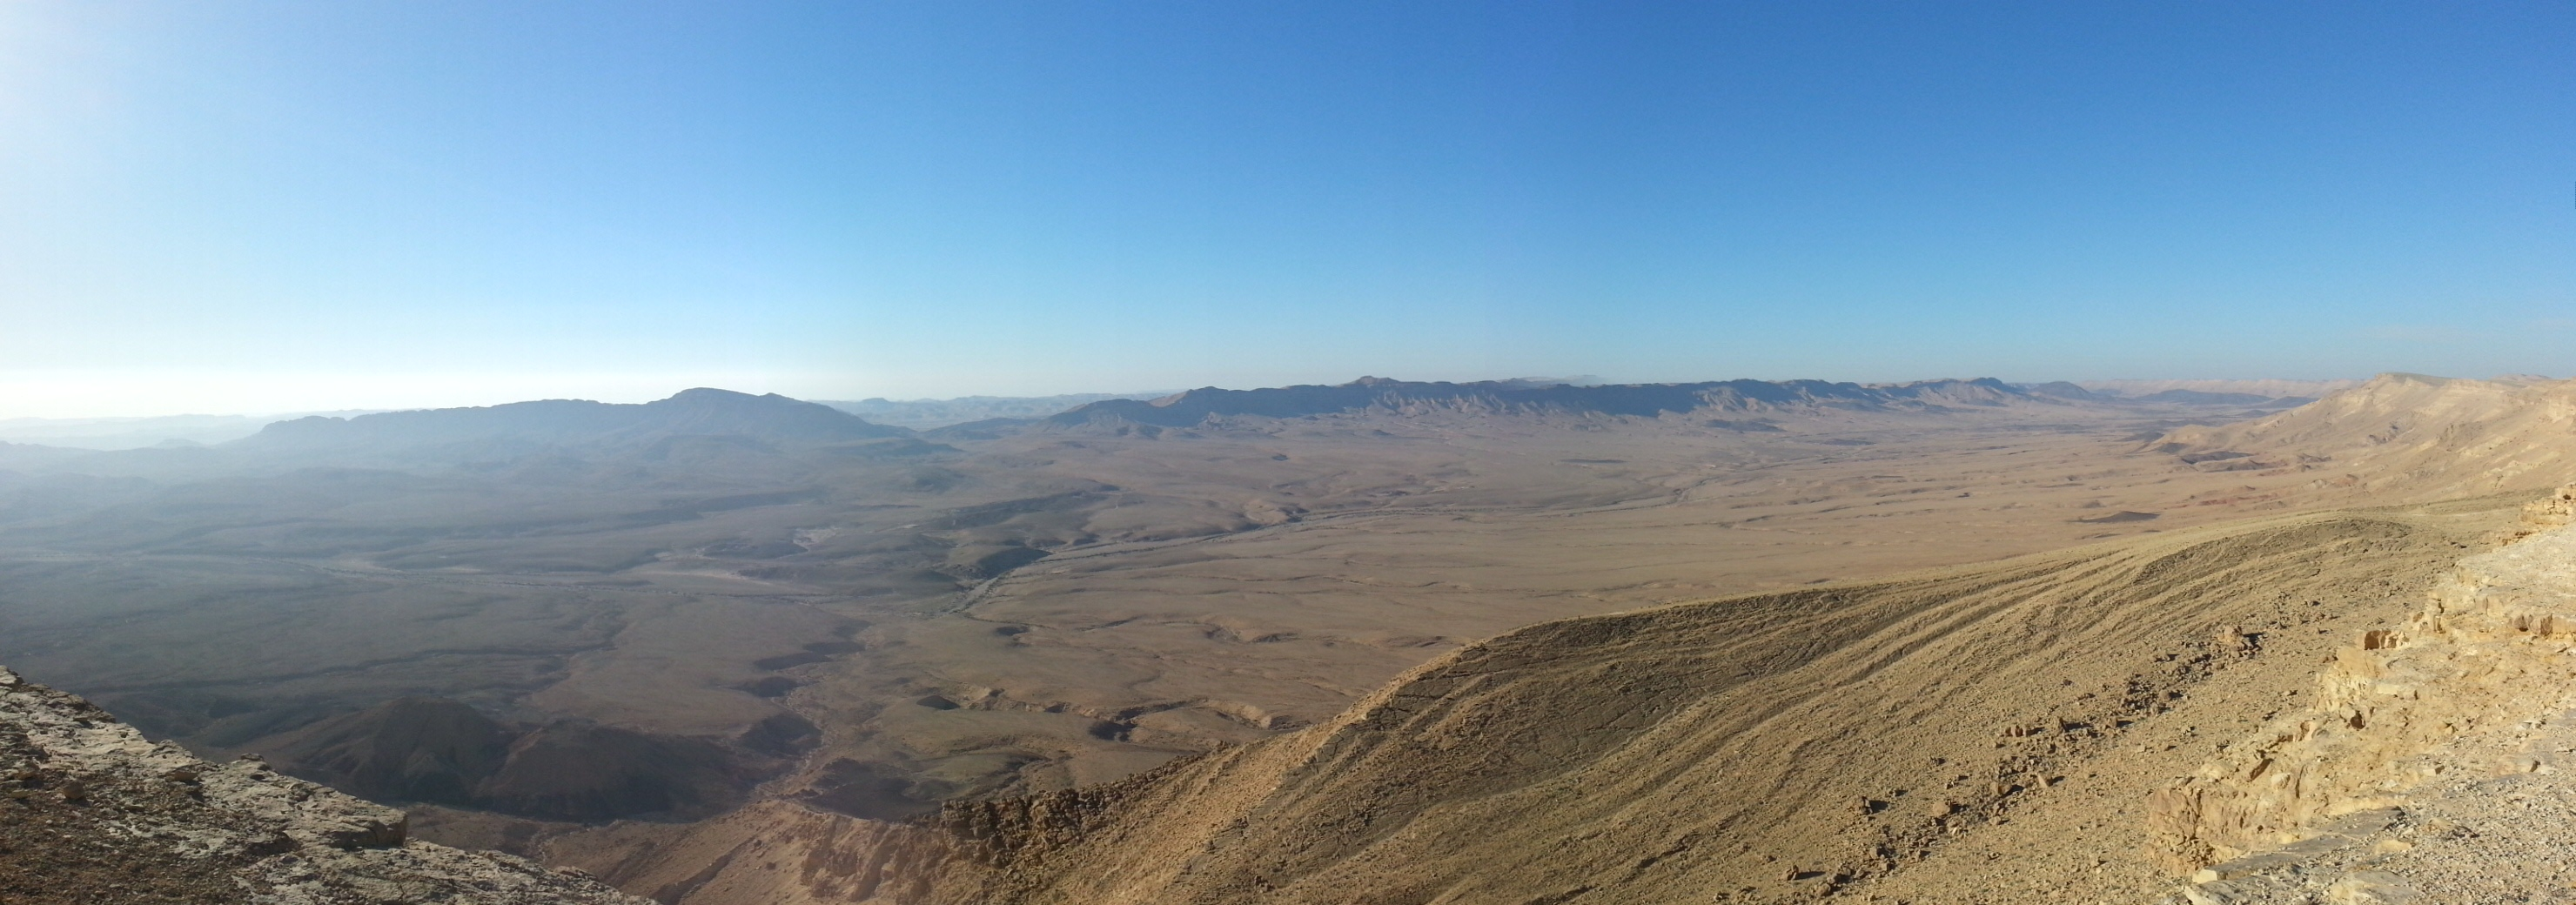 View over the Ramon Crater / Makhtesh Ramon from our field school accomodation